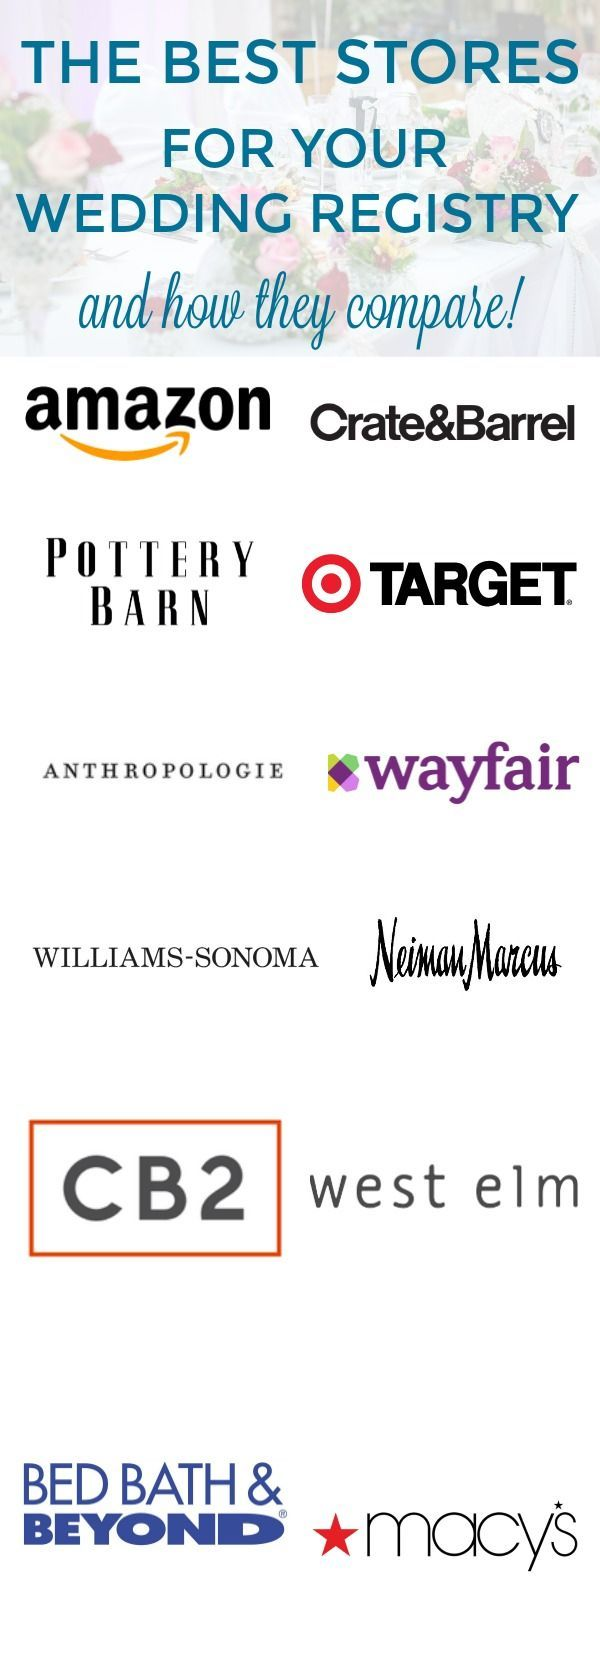 12 Best Wedding Registry Stores And A Comparison Of Their Benefit Programs Wedding Registry Stores Best Wedding Registry Wedding Gift Registry